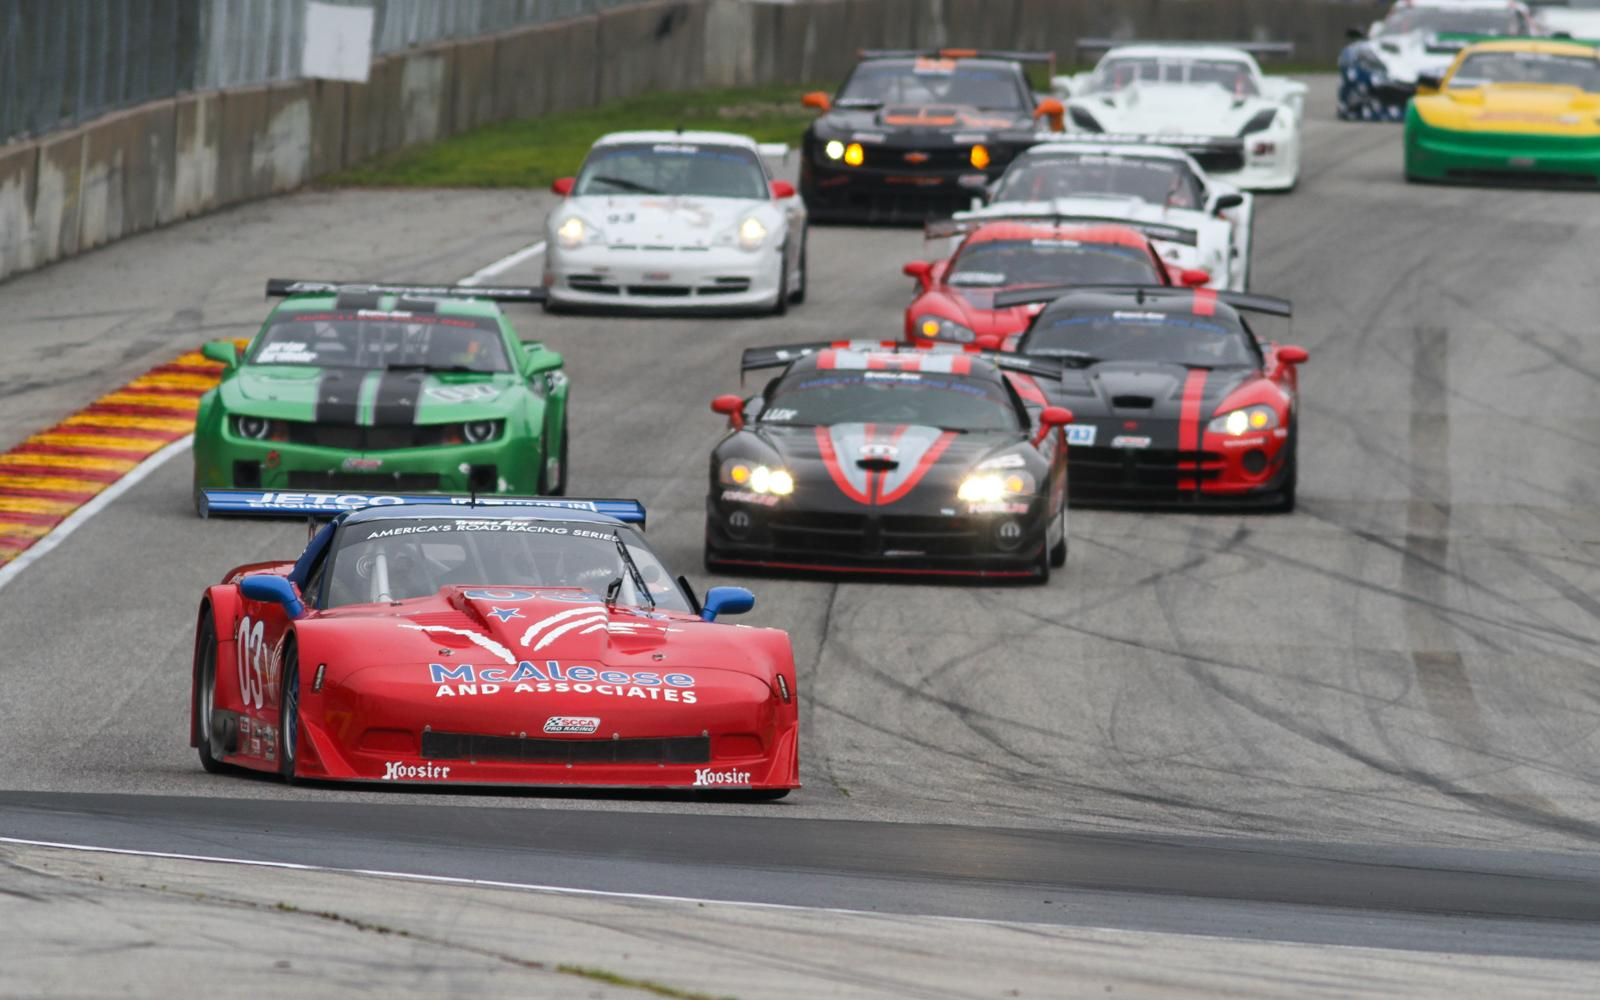 McAleese and Ave victorious in survival race at Road America